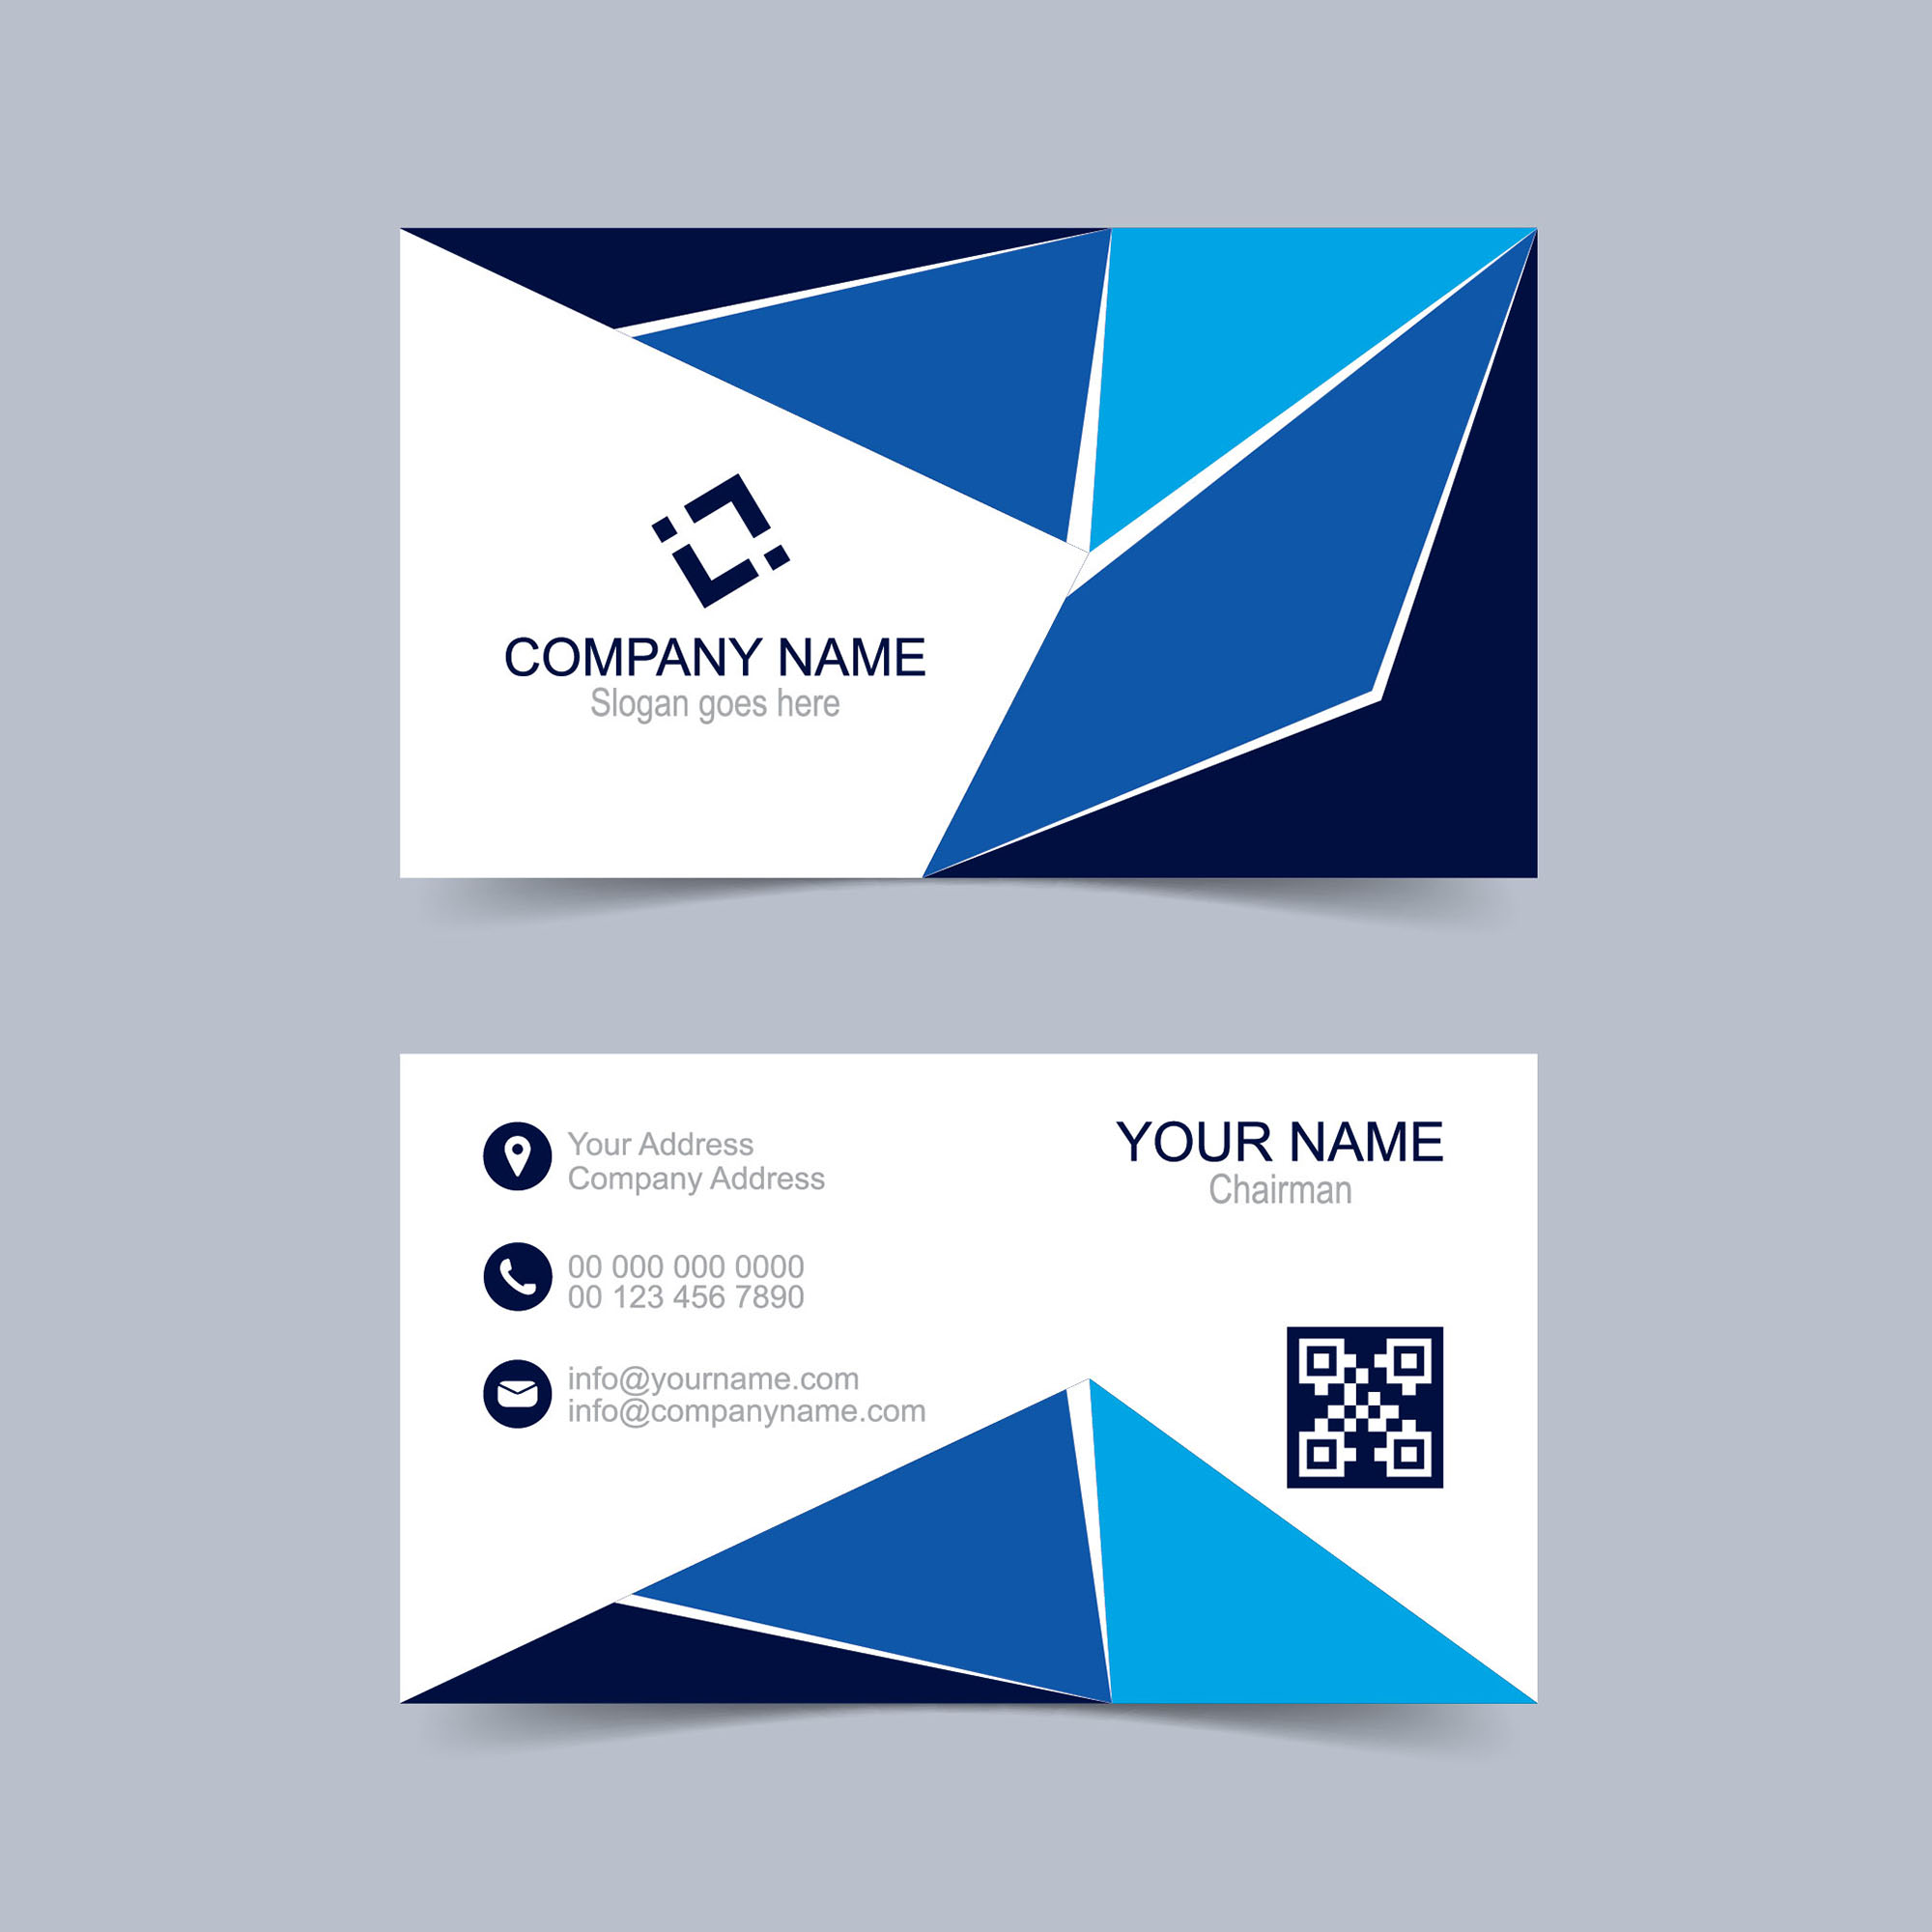 Creative business card design free download wisxi business card business cards business card design business card template design templates wajeb Choice Image